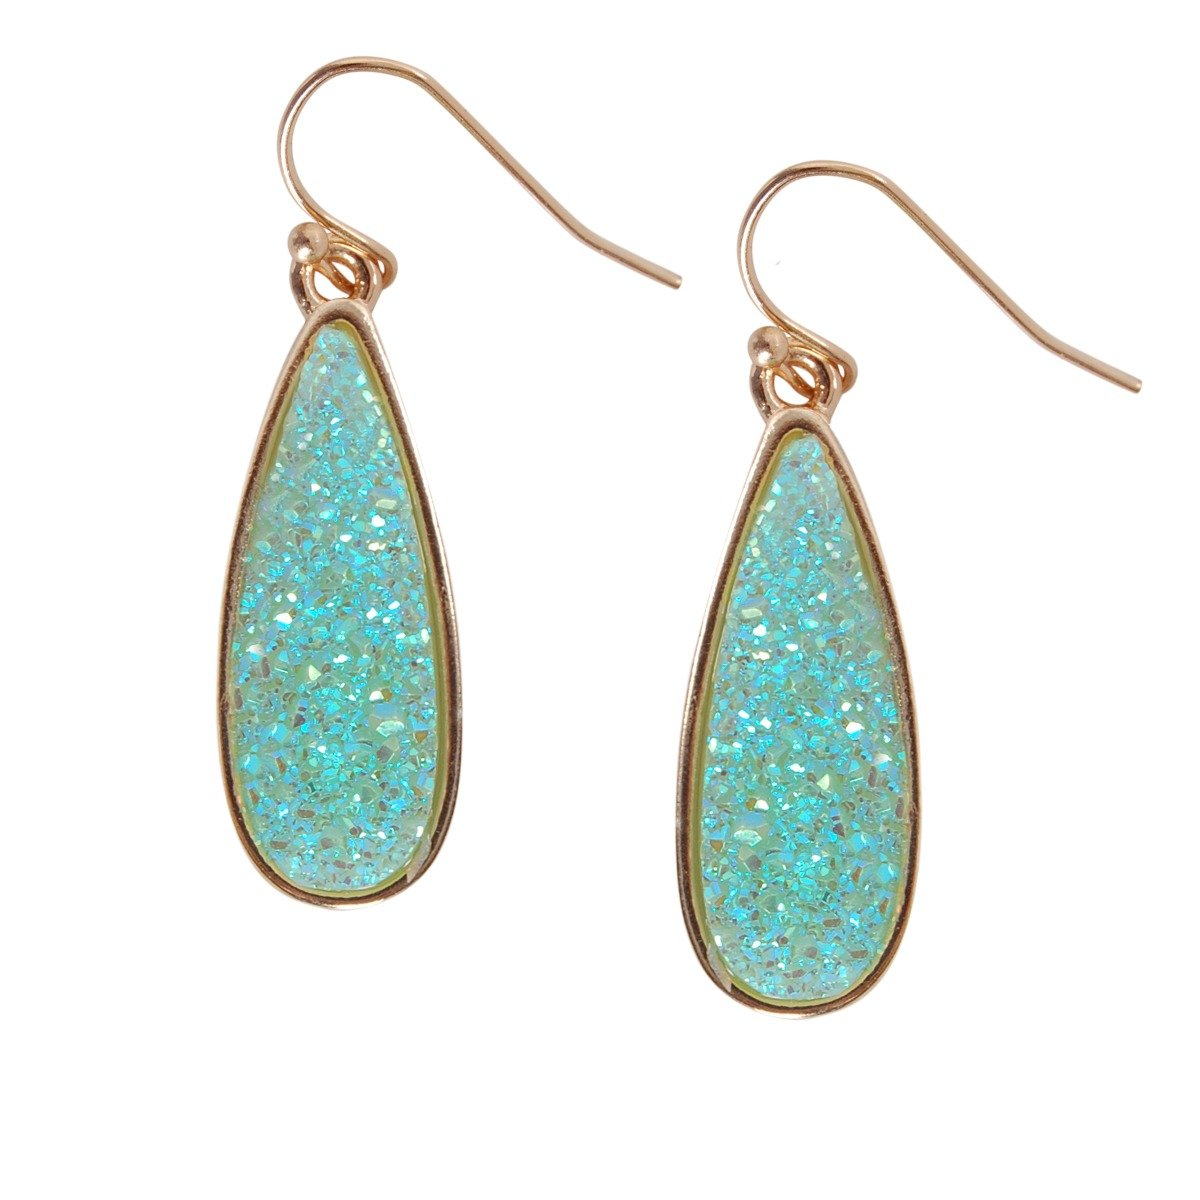 Humble Chic Simulated Druzy Drop Dangles - Sparkly Long Teardrop Dangly Earrings, Simulated Turquoise, Simulated Aquamarine, Mint, Aqua, Simulated Jade, Gold-Tone